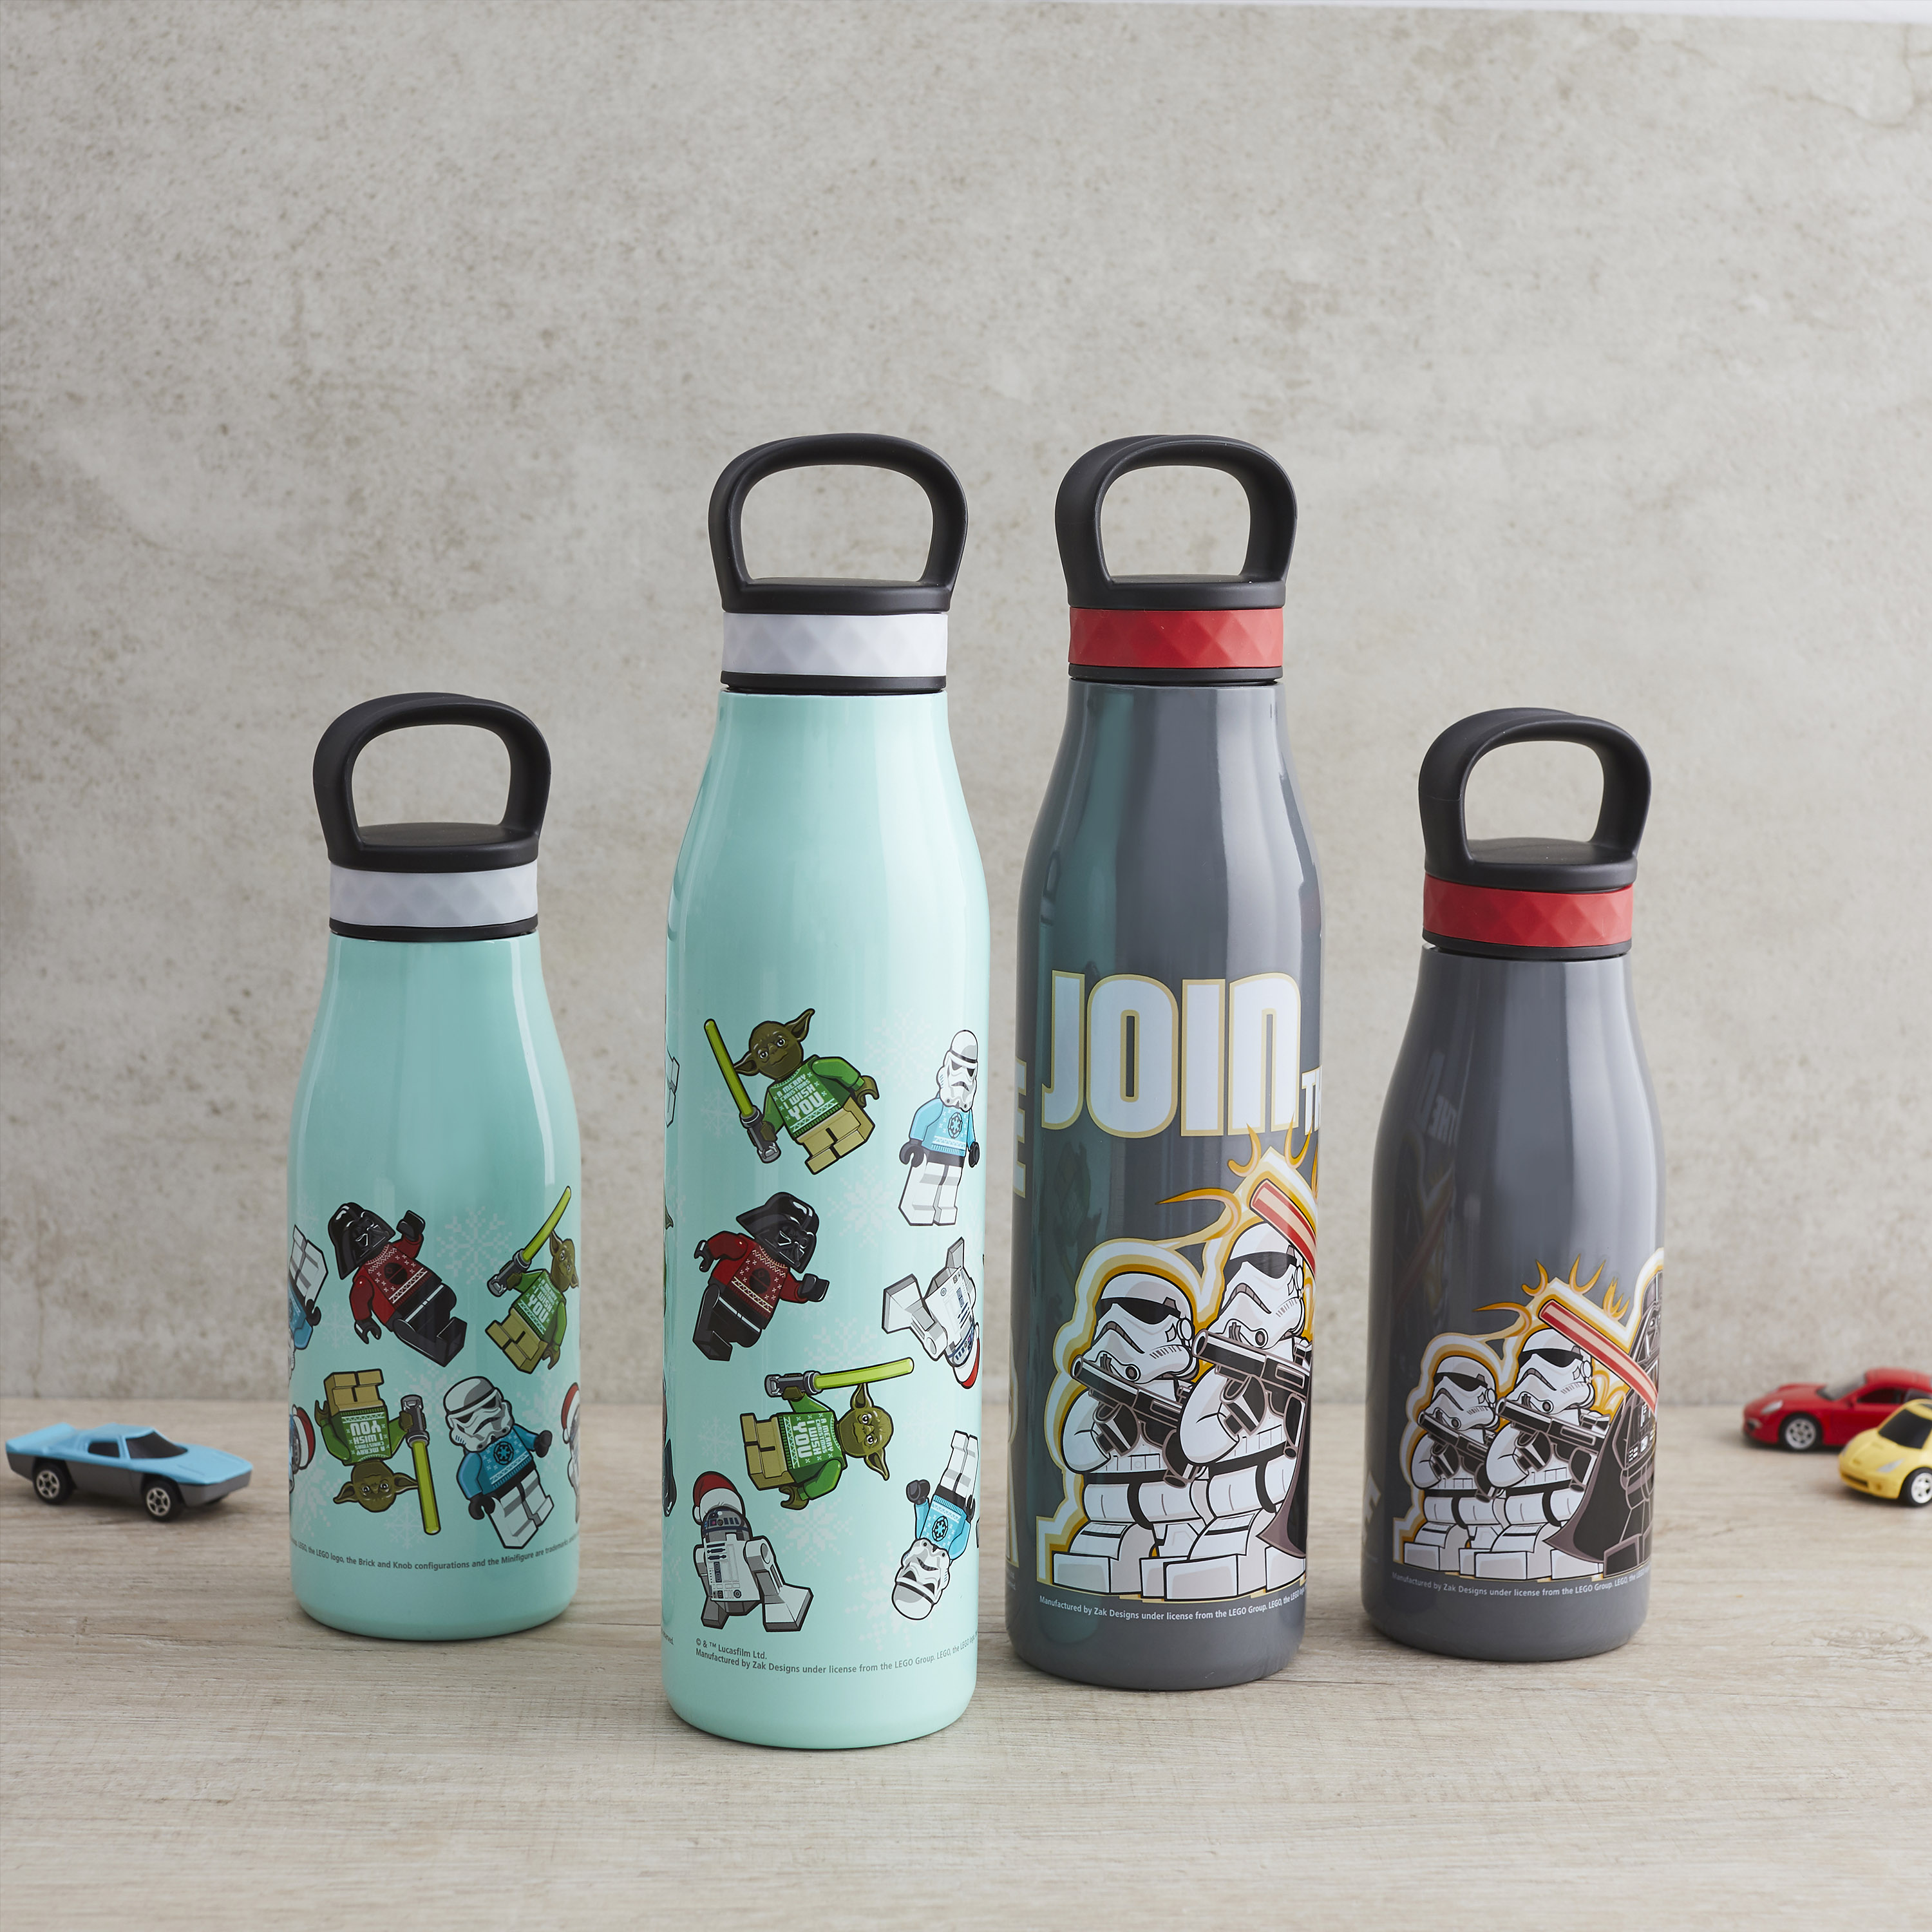 Lego Star Wars 12 ounce Stainless Steel Vacuum Insulated Water Bottle, Darth Vader slideshow image 7